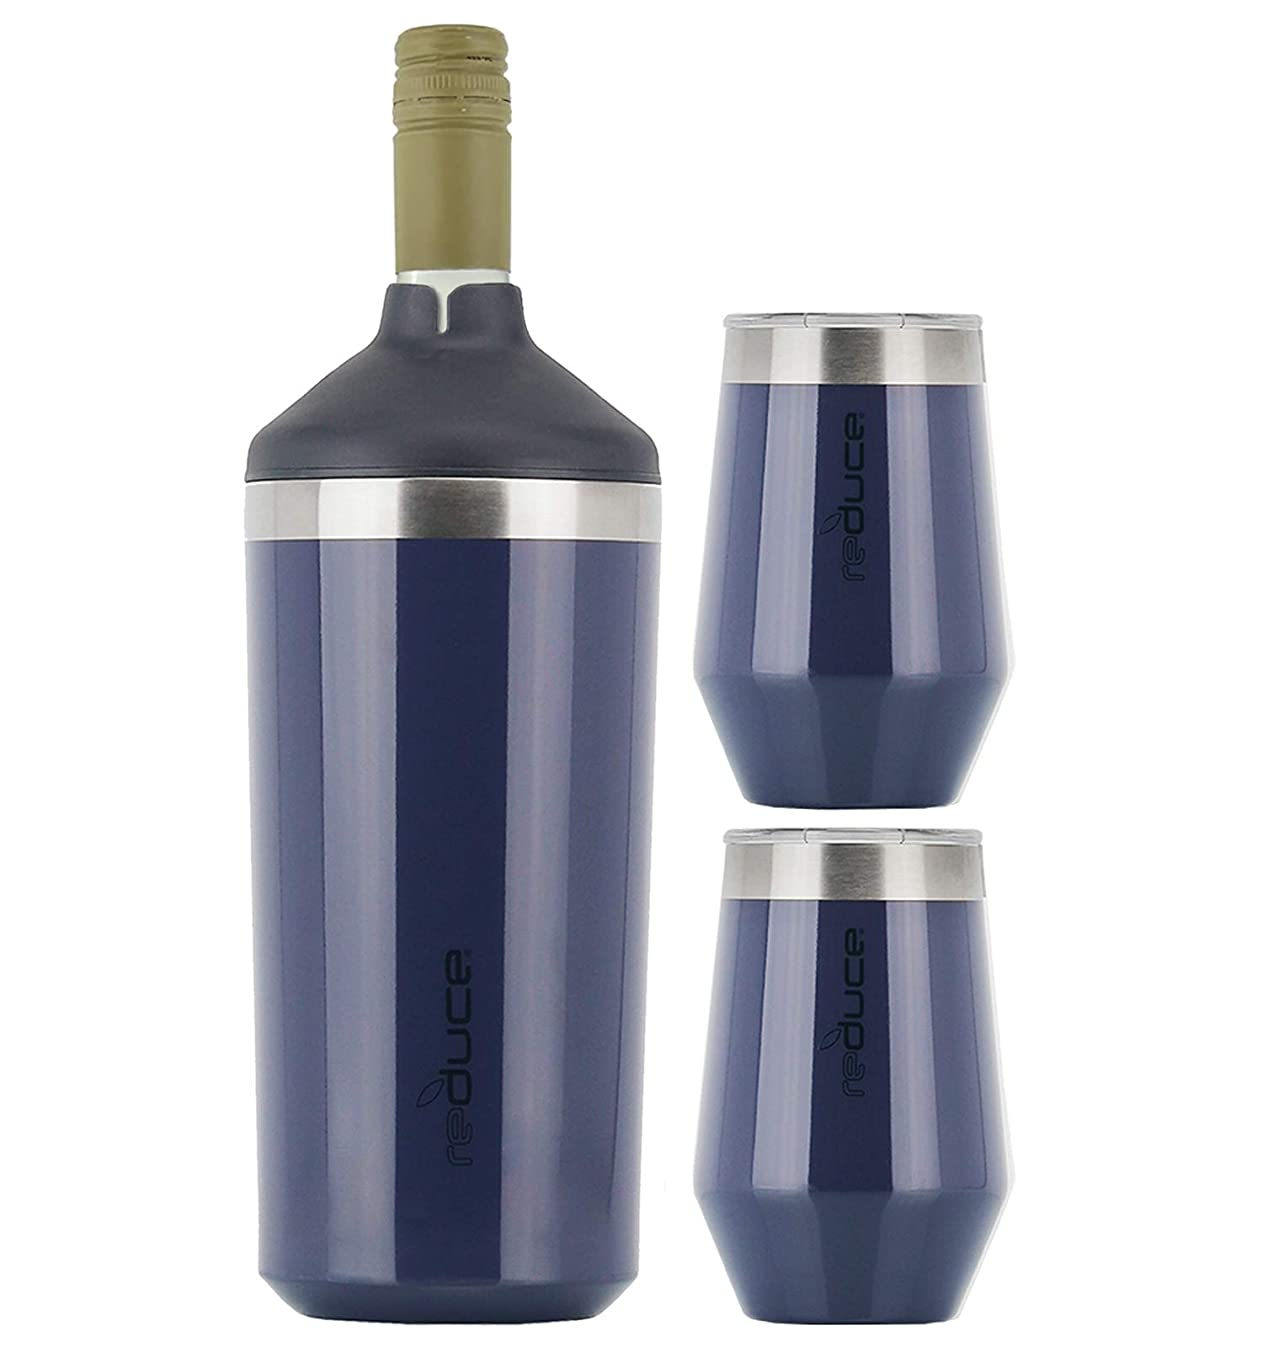 Reduce Wine Cooler Set - Stainless Steel Wine Bottle Cooler Set with 2 12oz Insulated Wine Tumblers - Keep Wine at the Perfect Temperature, No Ice Required, Fits Most Wine Bottles - Denim